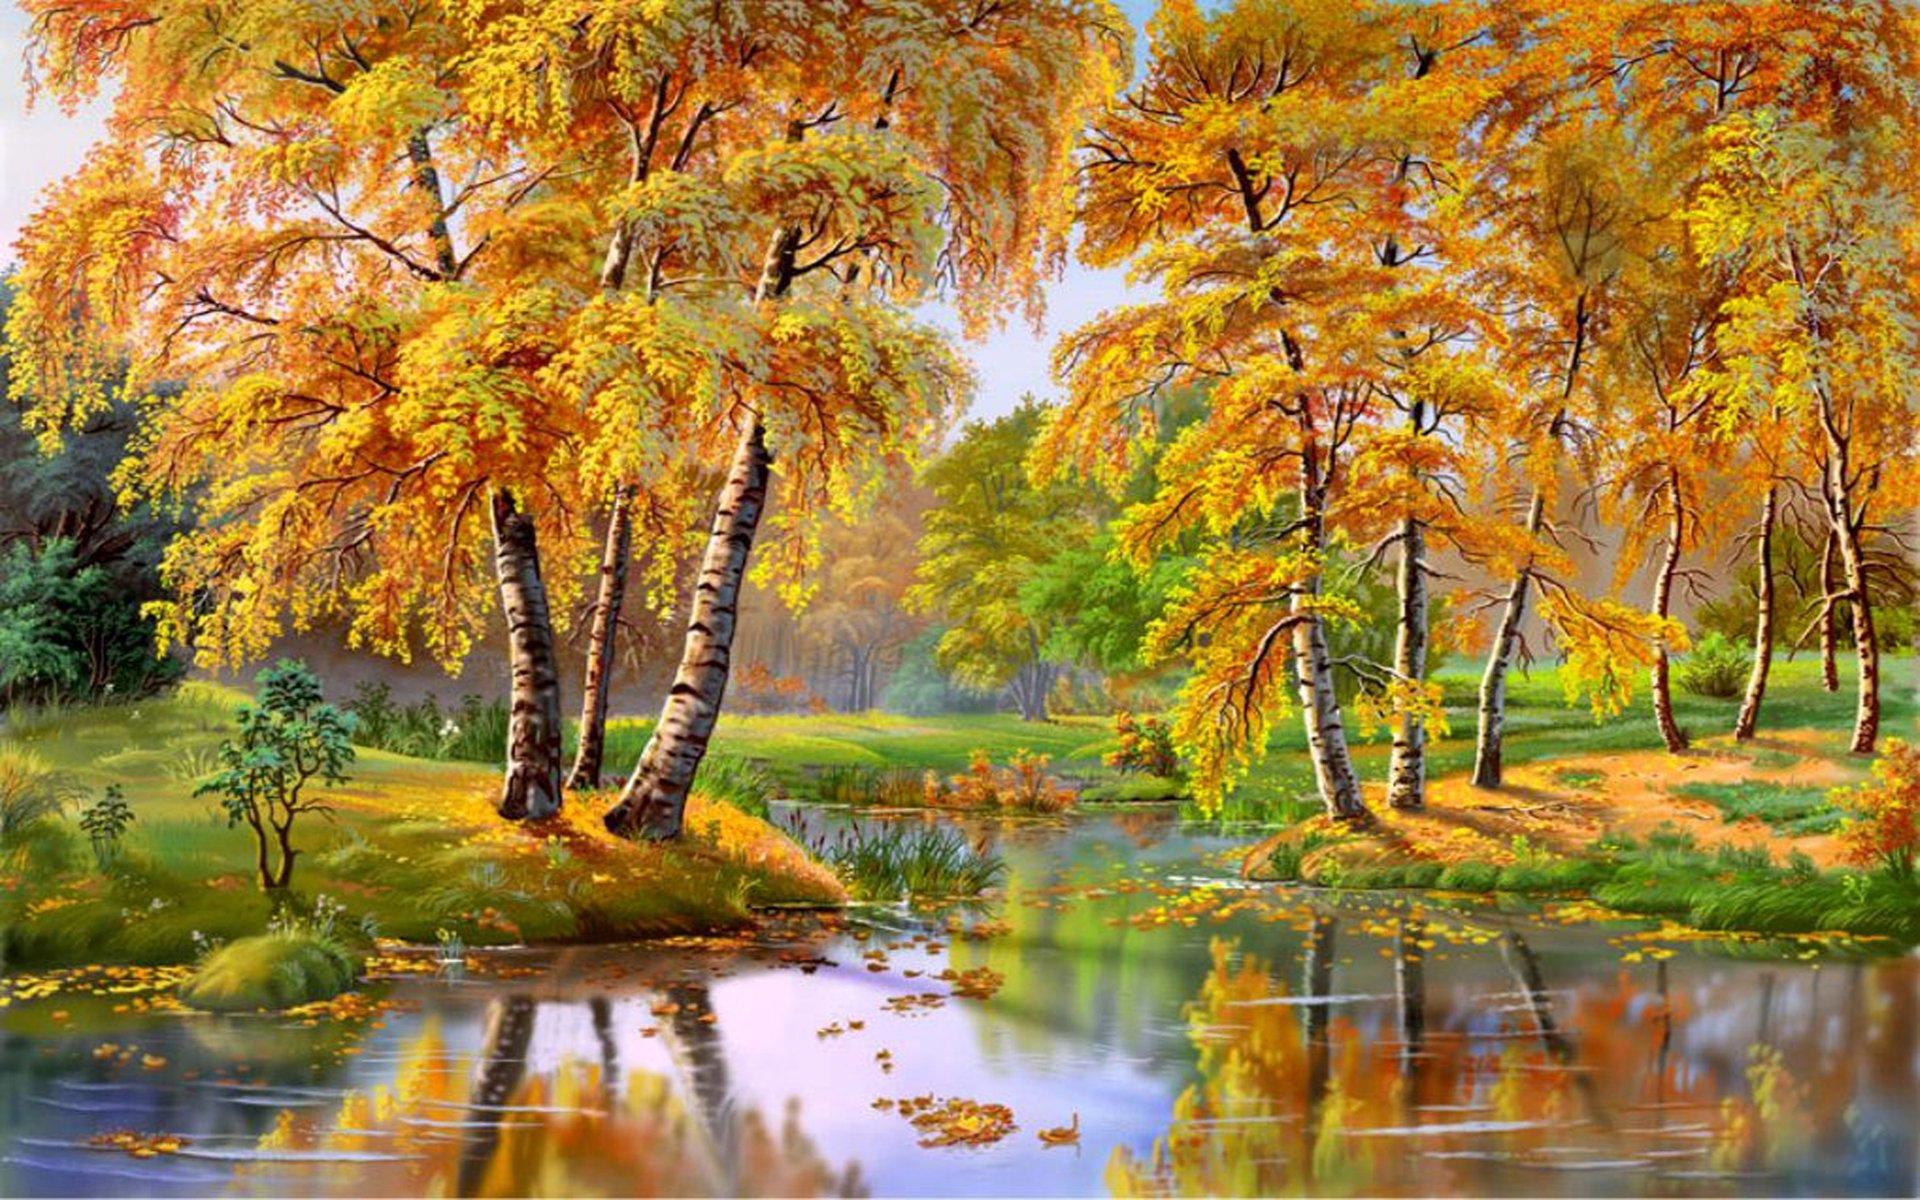 Tinkerbell Fall Wallpaper Autumn Landscape Painting Hd Wallpaper Background Image